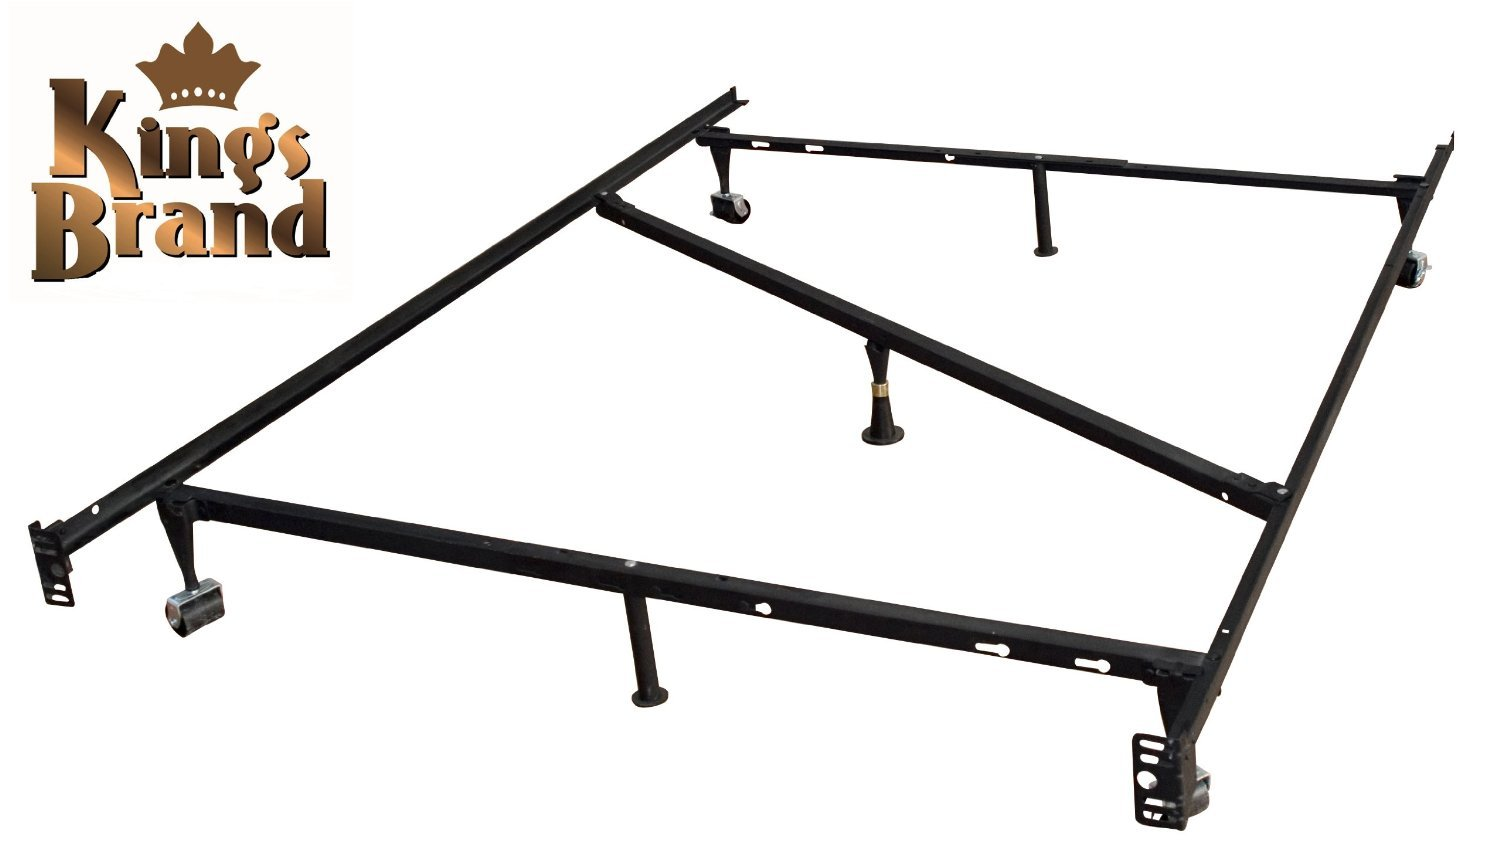 King S Brand 7 Leg Heavy Duty Adjustable Metal Bed Frame